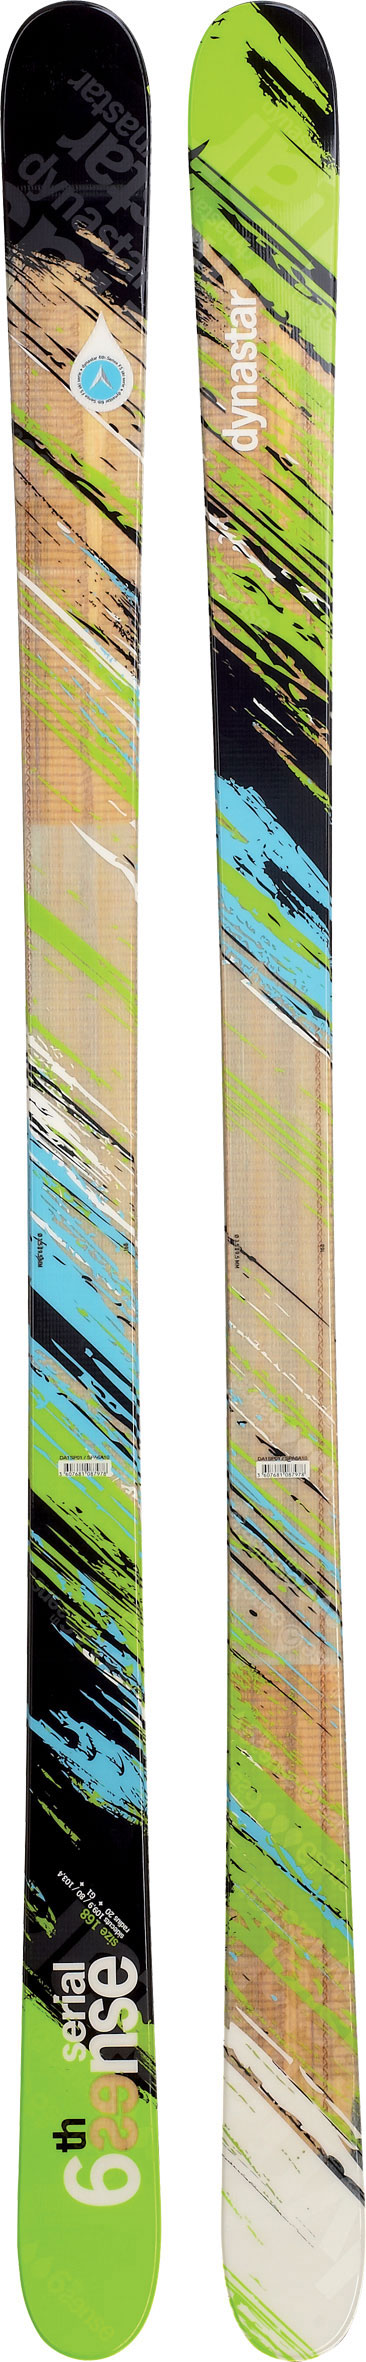 "Ski 6th Sense twin tips feature award-winning, all-mountain freestyle performance for park laps and powder days. spring-loaded boost, powerful edge grip and enhanced durability provide competition-level park performance whether carving up icy, pipe walls or attacking slopestyle courses. Twin rocker combined with spring blade Technology and dynastar's high-performance sandwich constructions delivers surfy and playful floatation in powder. Whether floating over man-made features or charging the deepest snow conditions, dynastar's 6th sense leads the way. Key Features of the Dynastar 6th Sense Serial Skis: Twin rocker technology: significant tip and tail rocker for easy steering, speed control and playful floatation Low camber underfoot provides increased edge grip, power and on-trail performance Spring blade: a wood core is machined to varied thicknesses while varied lengths of fiberglass layers are stacked creating more energy and durability Provides springboard effect for incredible ""load-up and pop"" capability and landing shock absorption Sandwich laminate construction: wood cores with metal and high tech laminates provide the best feel, balance, power and stability Vertical sidewalls dual density: deliver the ultimate edge grip, power and balance Torsion box: multiaxial fiber wrapped and layered around core for torsional stiffness, stability and increased energy Sidecut: 132-98-120mm - $239.95"